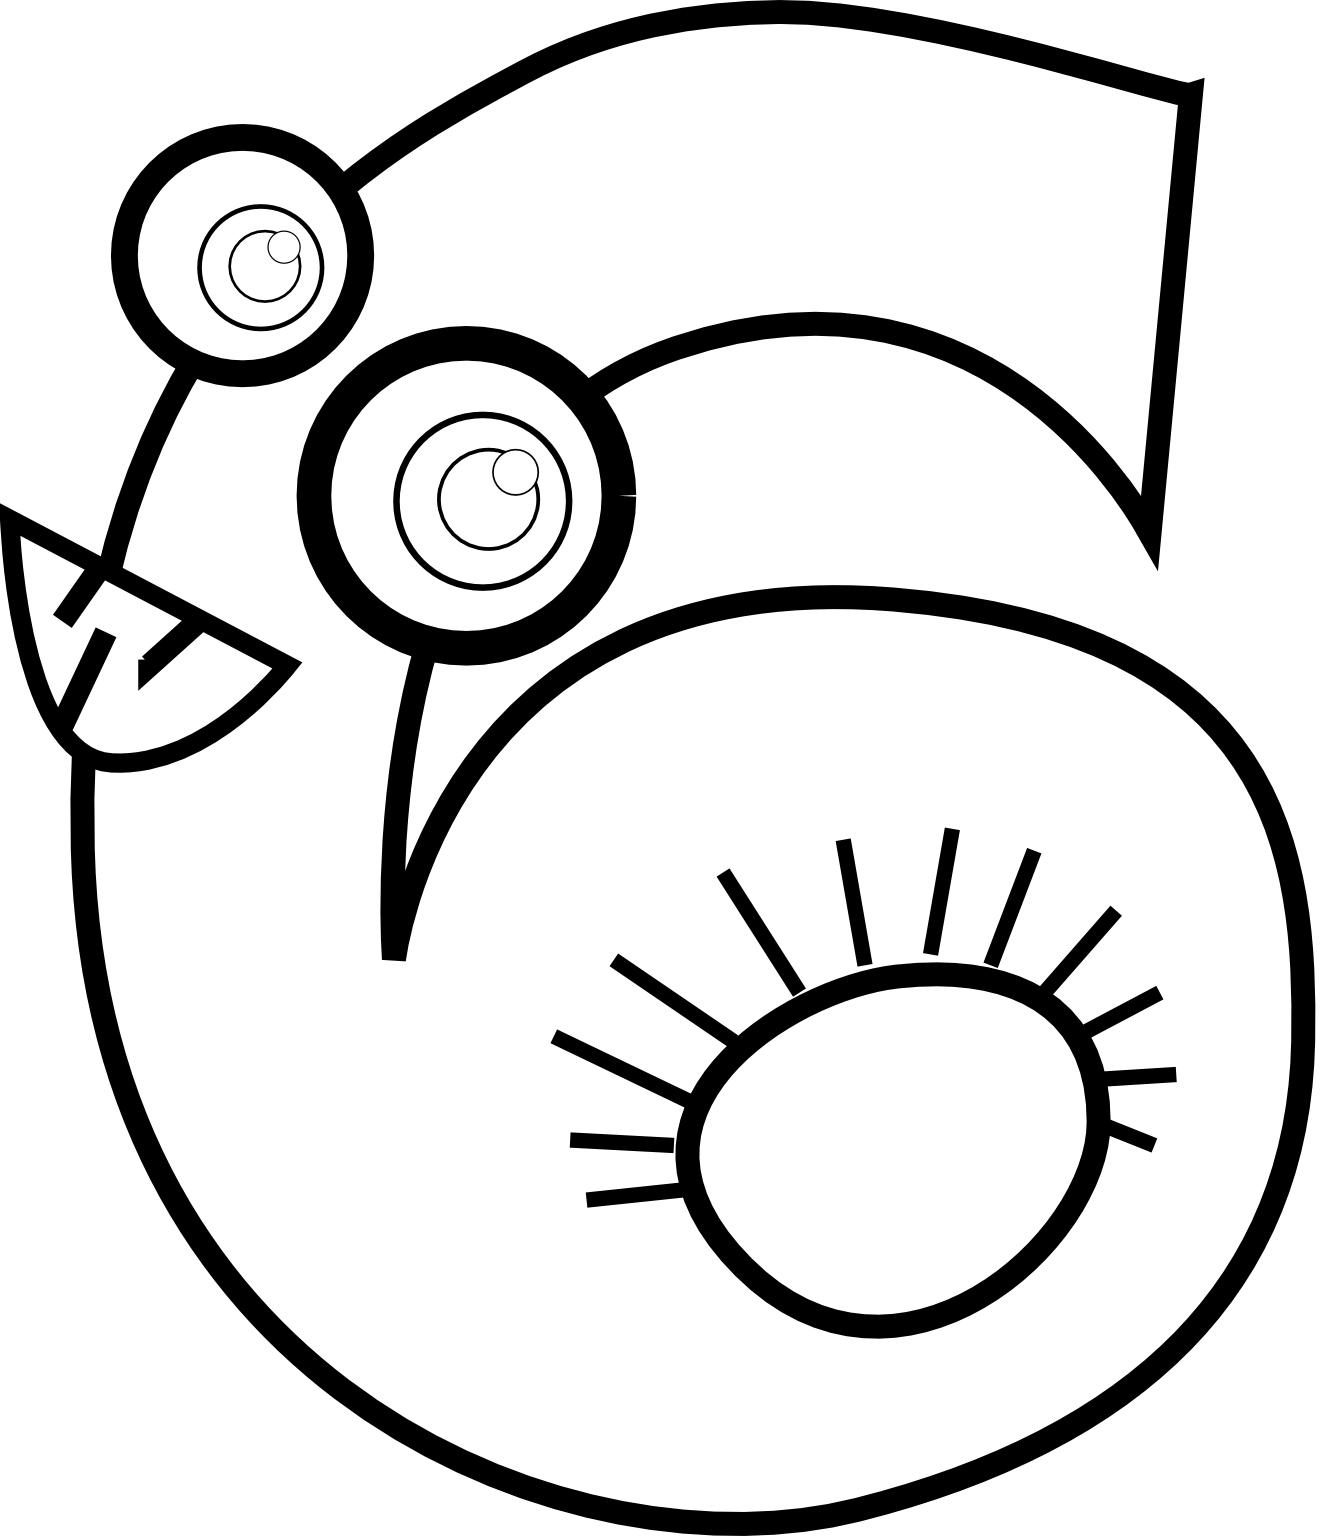 collection of number. Numbers clipart black and white